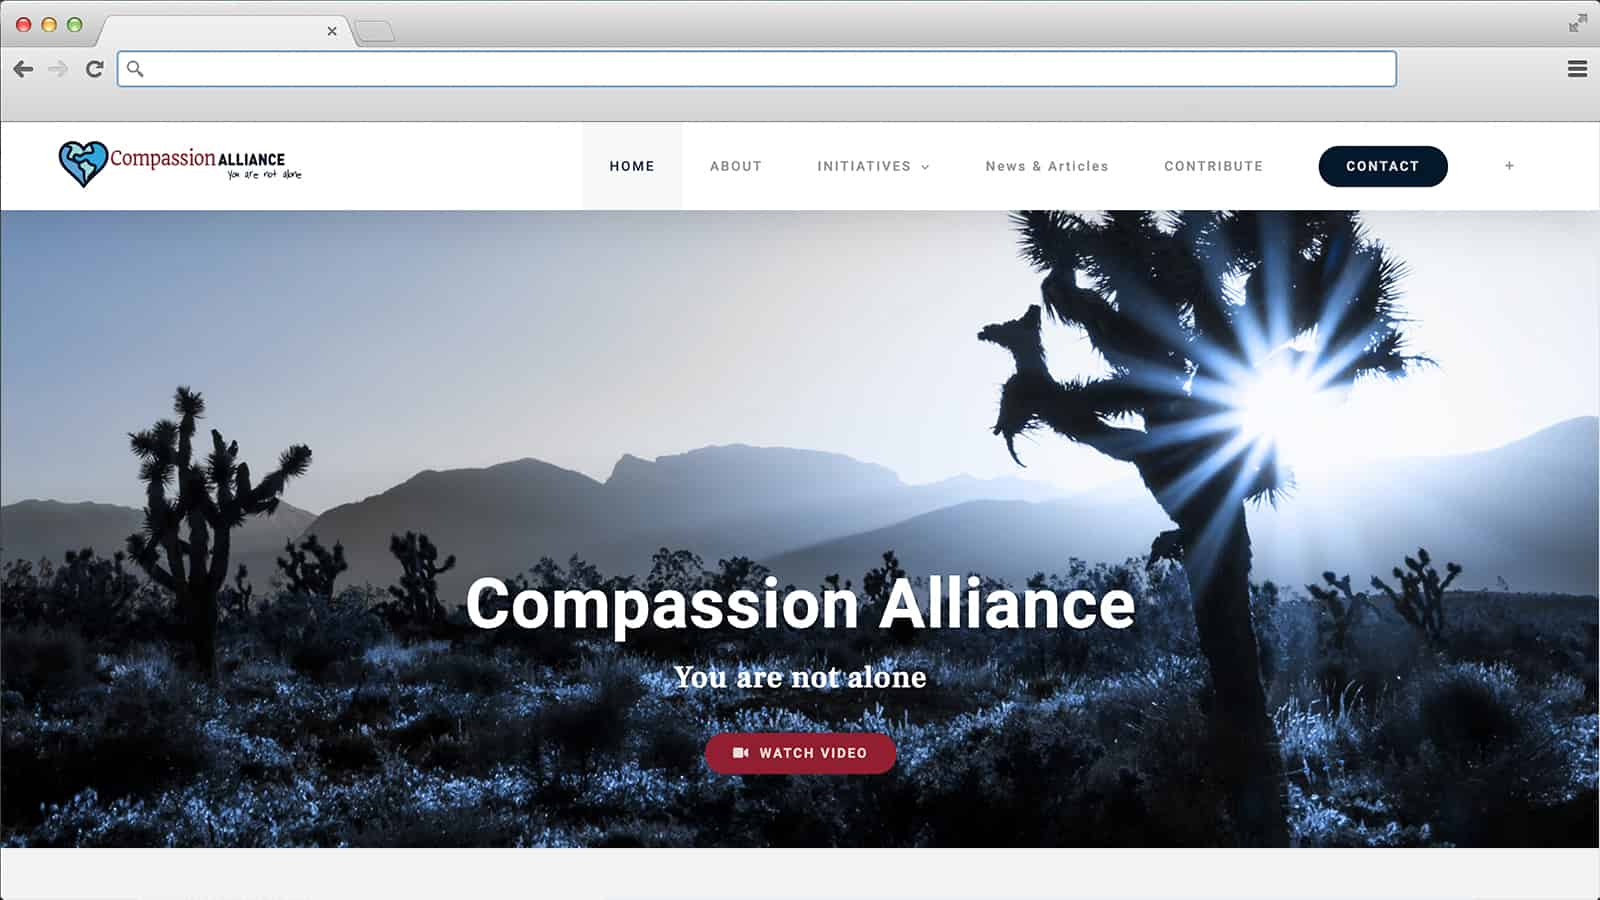 Compassion Alliance